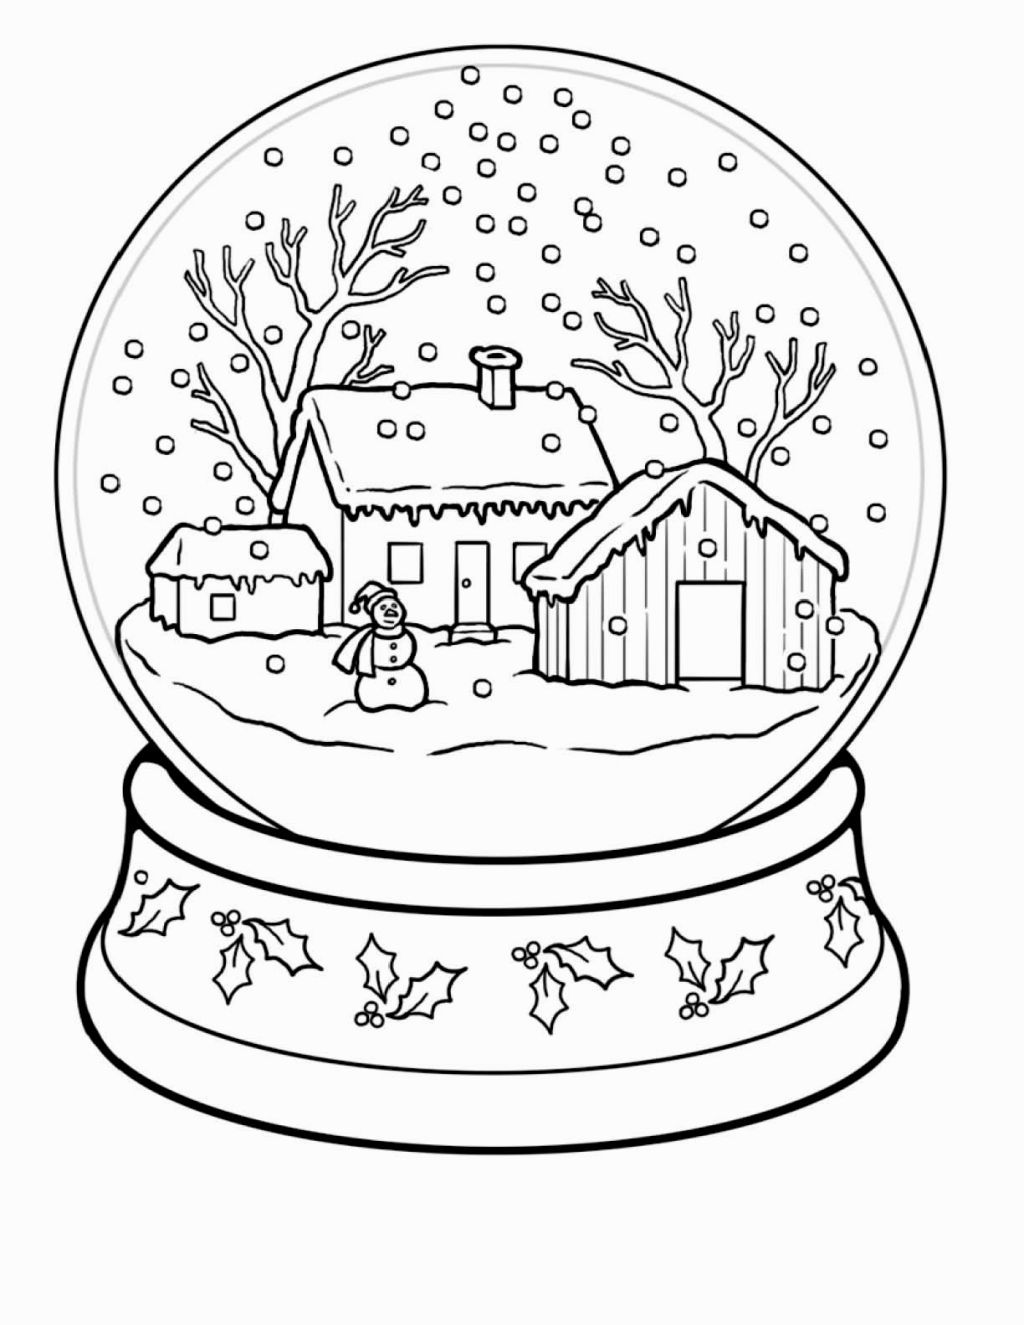 snowflake coloring pages for adults delicate snowflake adult coloring book page stock vector for pages snowflake coloring adults